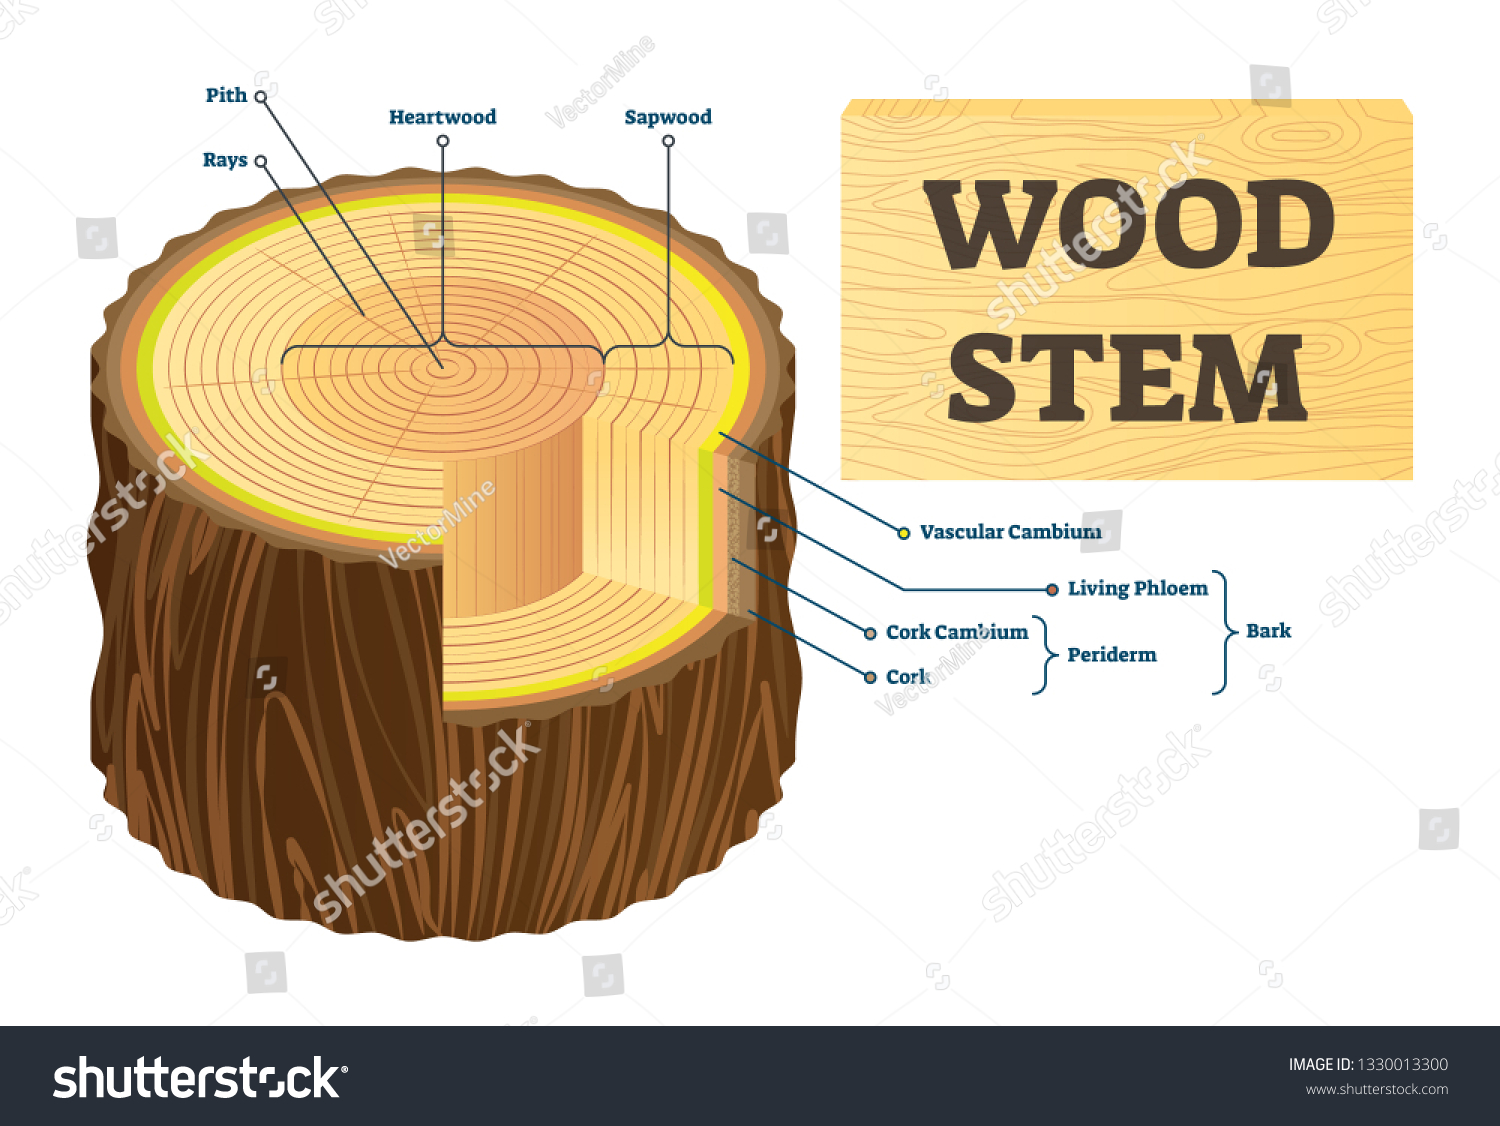 hight resolution of wood stem vector illustration educational labeled tree rings structure cut cross section with rays